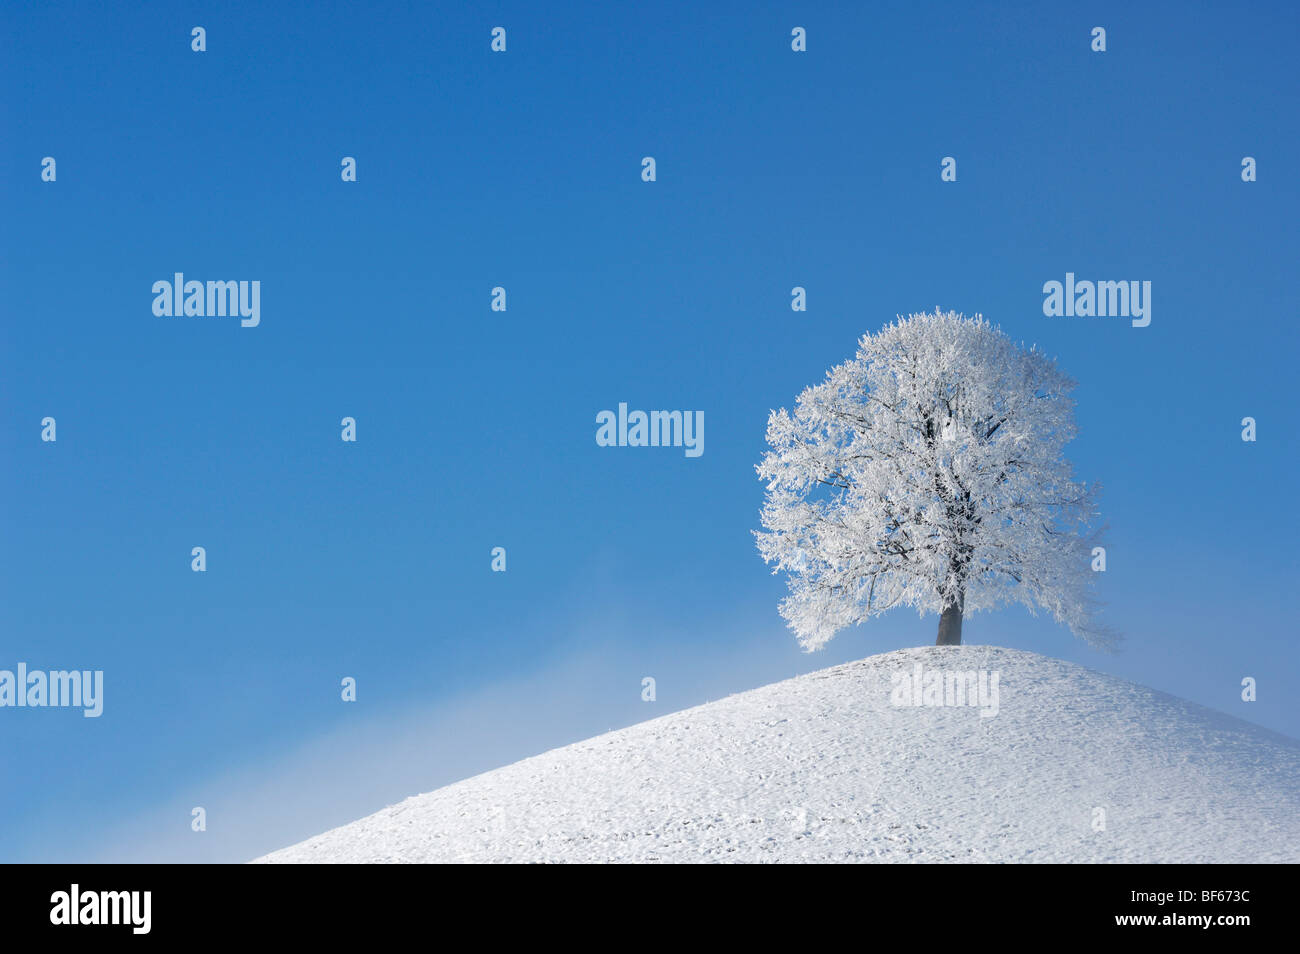 Linden tree (Tilia sp.),bare tree with frost in winter, Switzerland, Europe - Stock Image